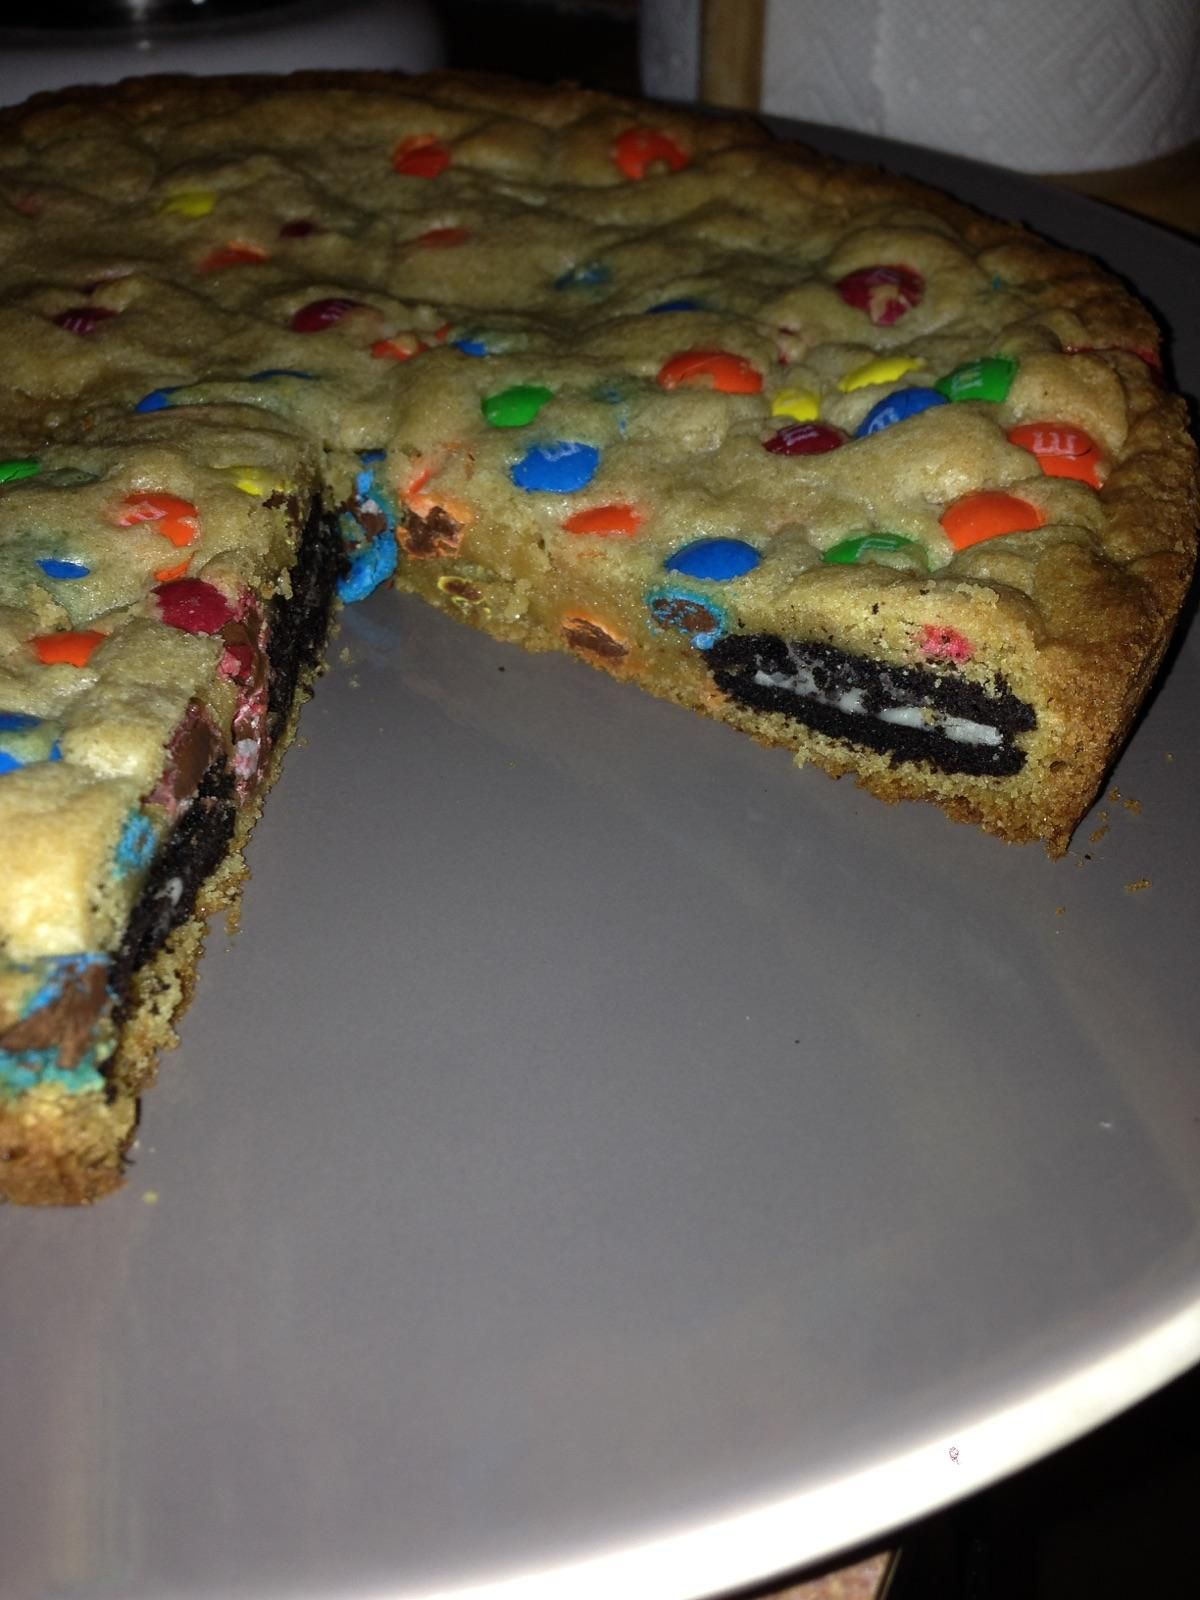 My girlfriend just made this Oreo and mm stuffed cookie Soooooooo